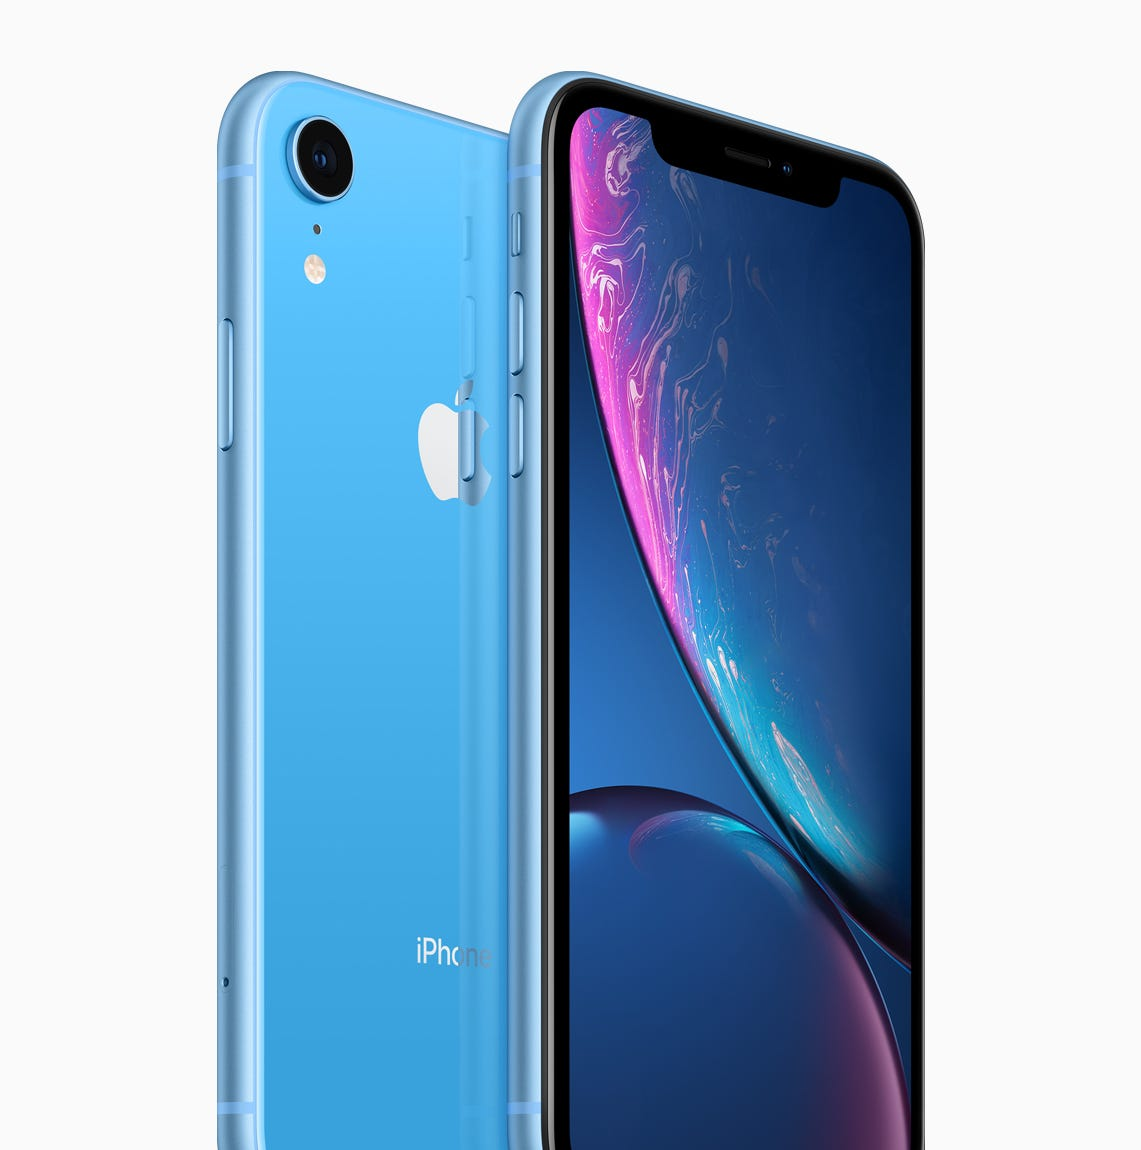 iPhone XR review: Why you should consider the budget model over the pricier XS